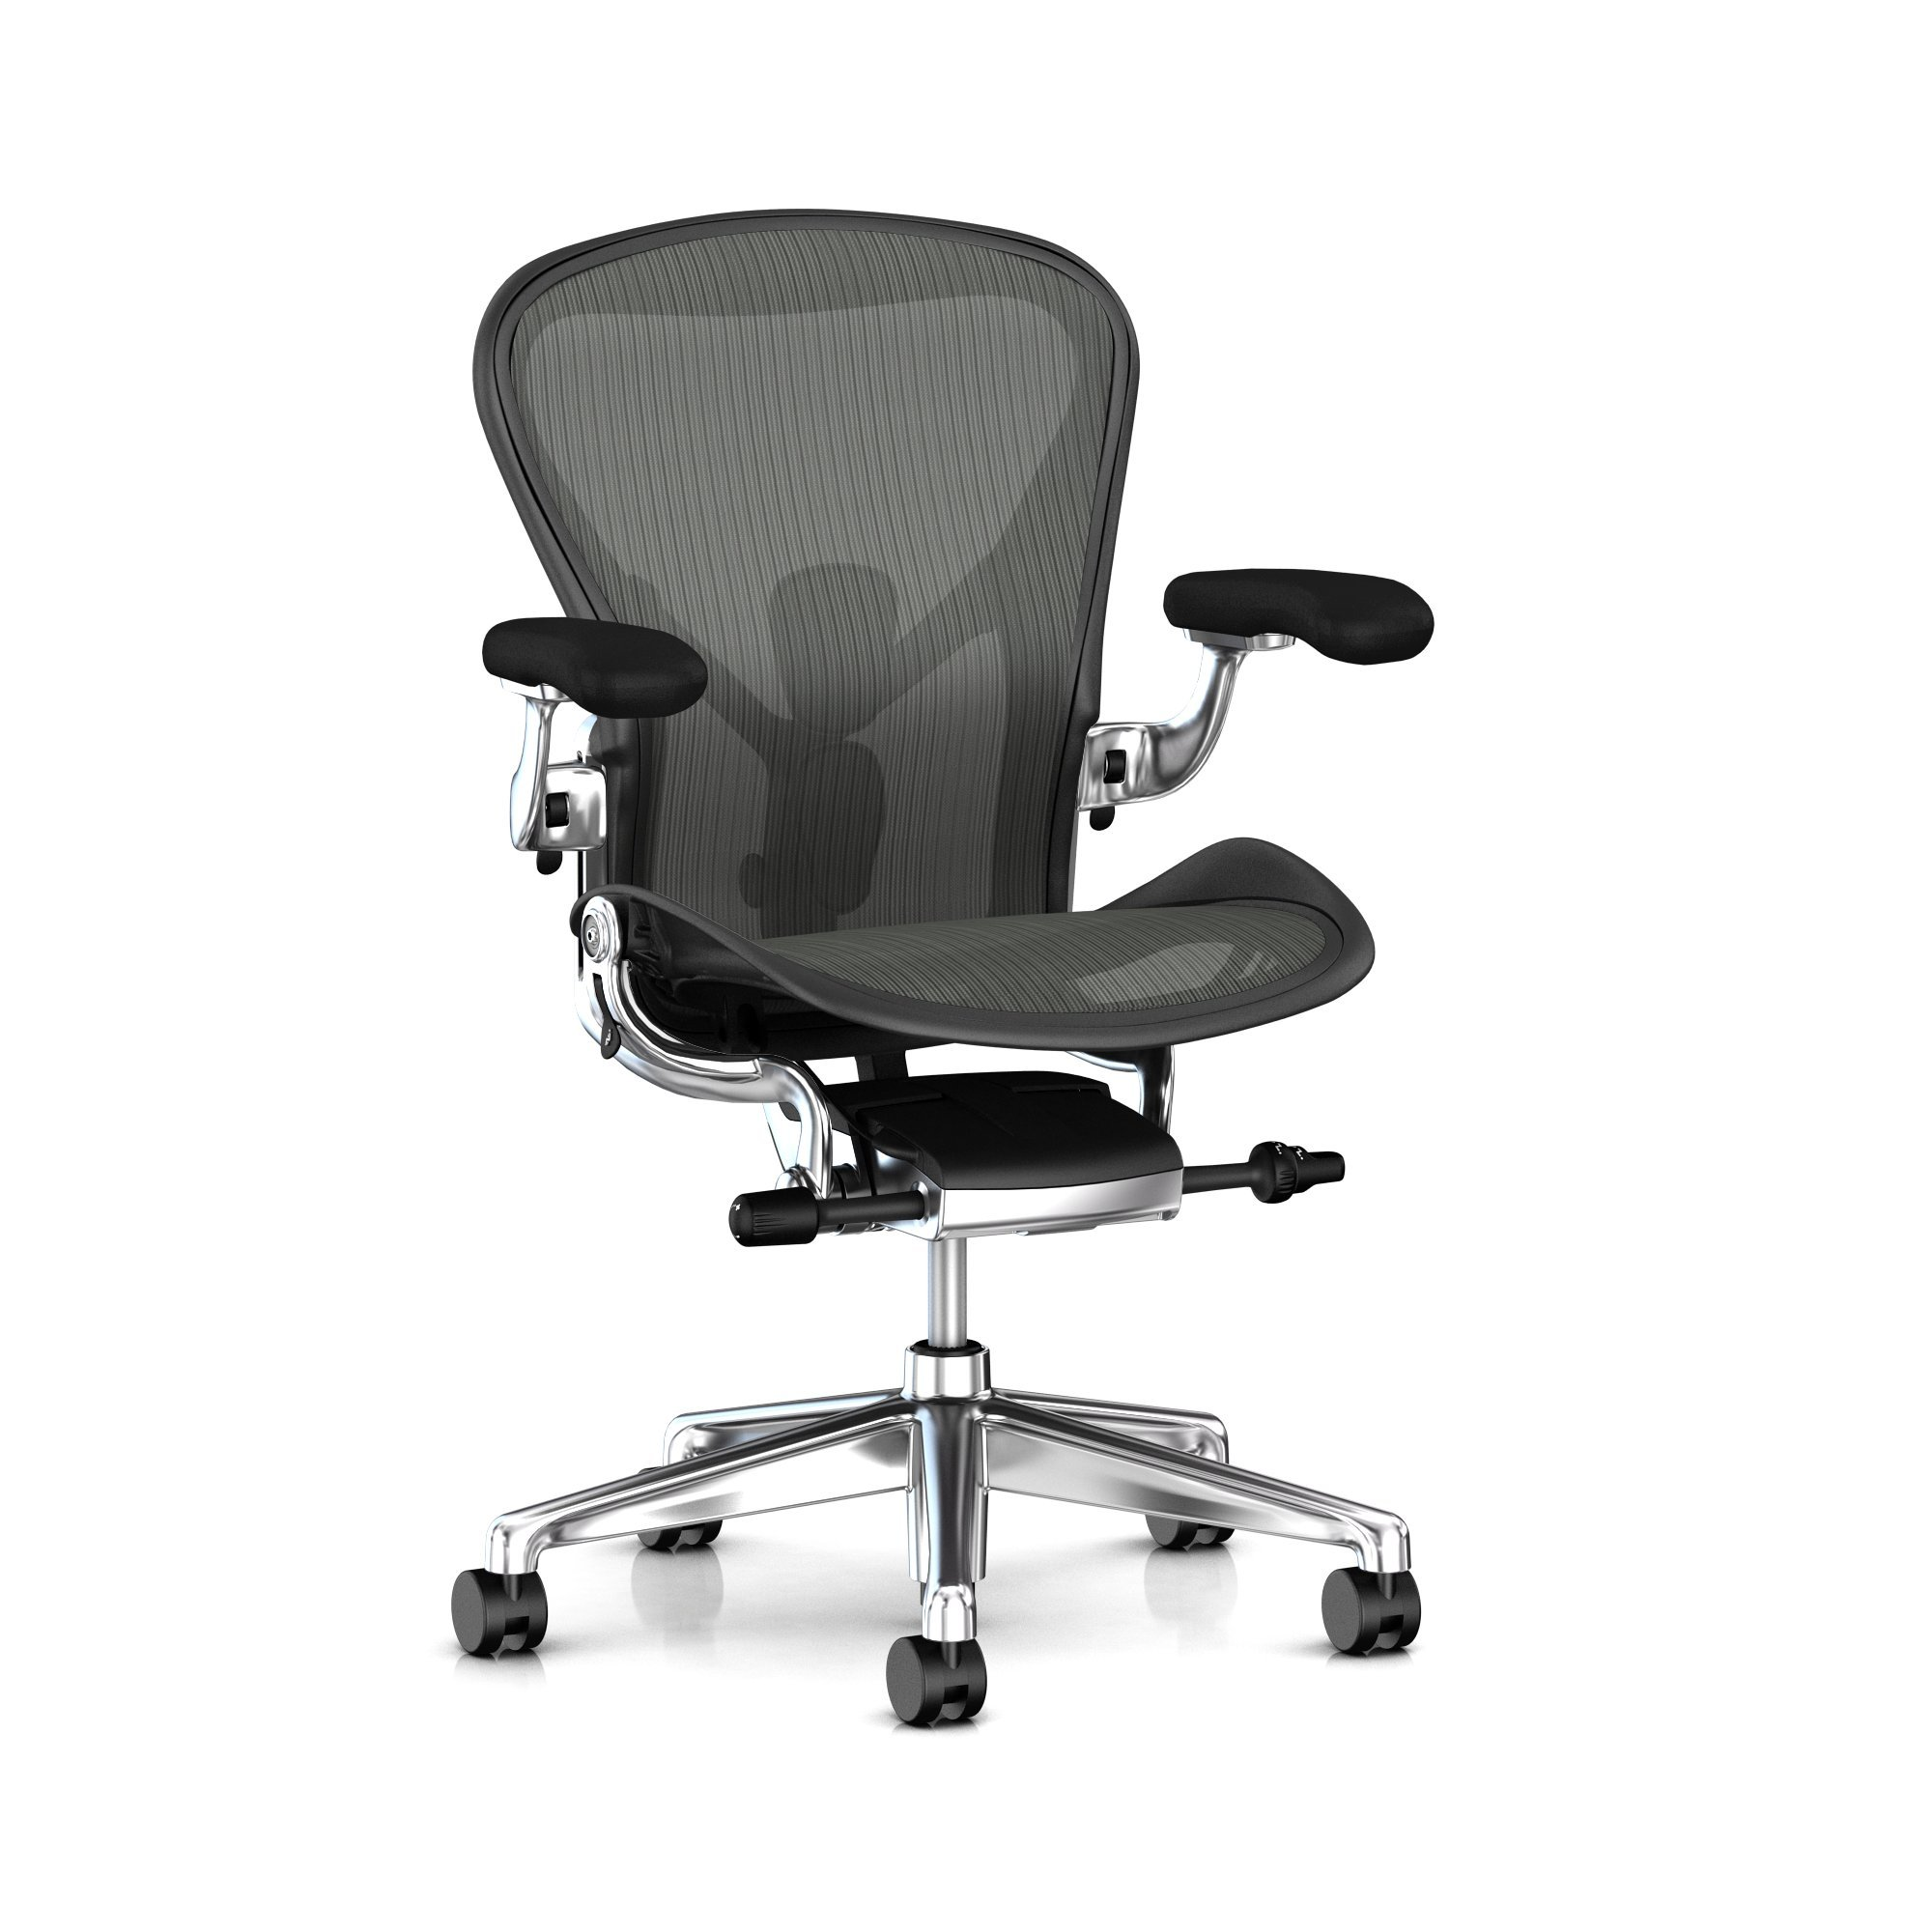 Herman Miller Aeron Ergonomic Office Chair with Tilt Limiter and Seat Angle | Adjustable PostureFit SL, Arms, and Carpet Casters | Medium Size B with Graphite / Polished Aluminum Finish